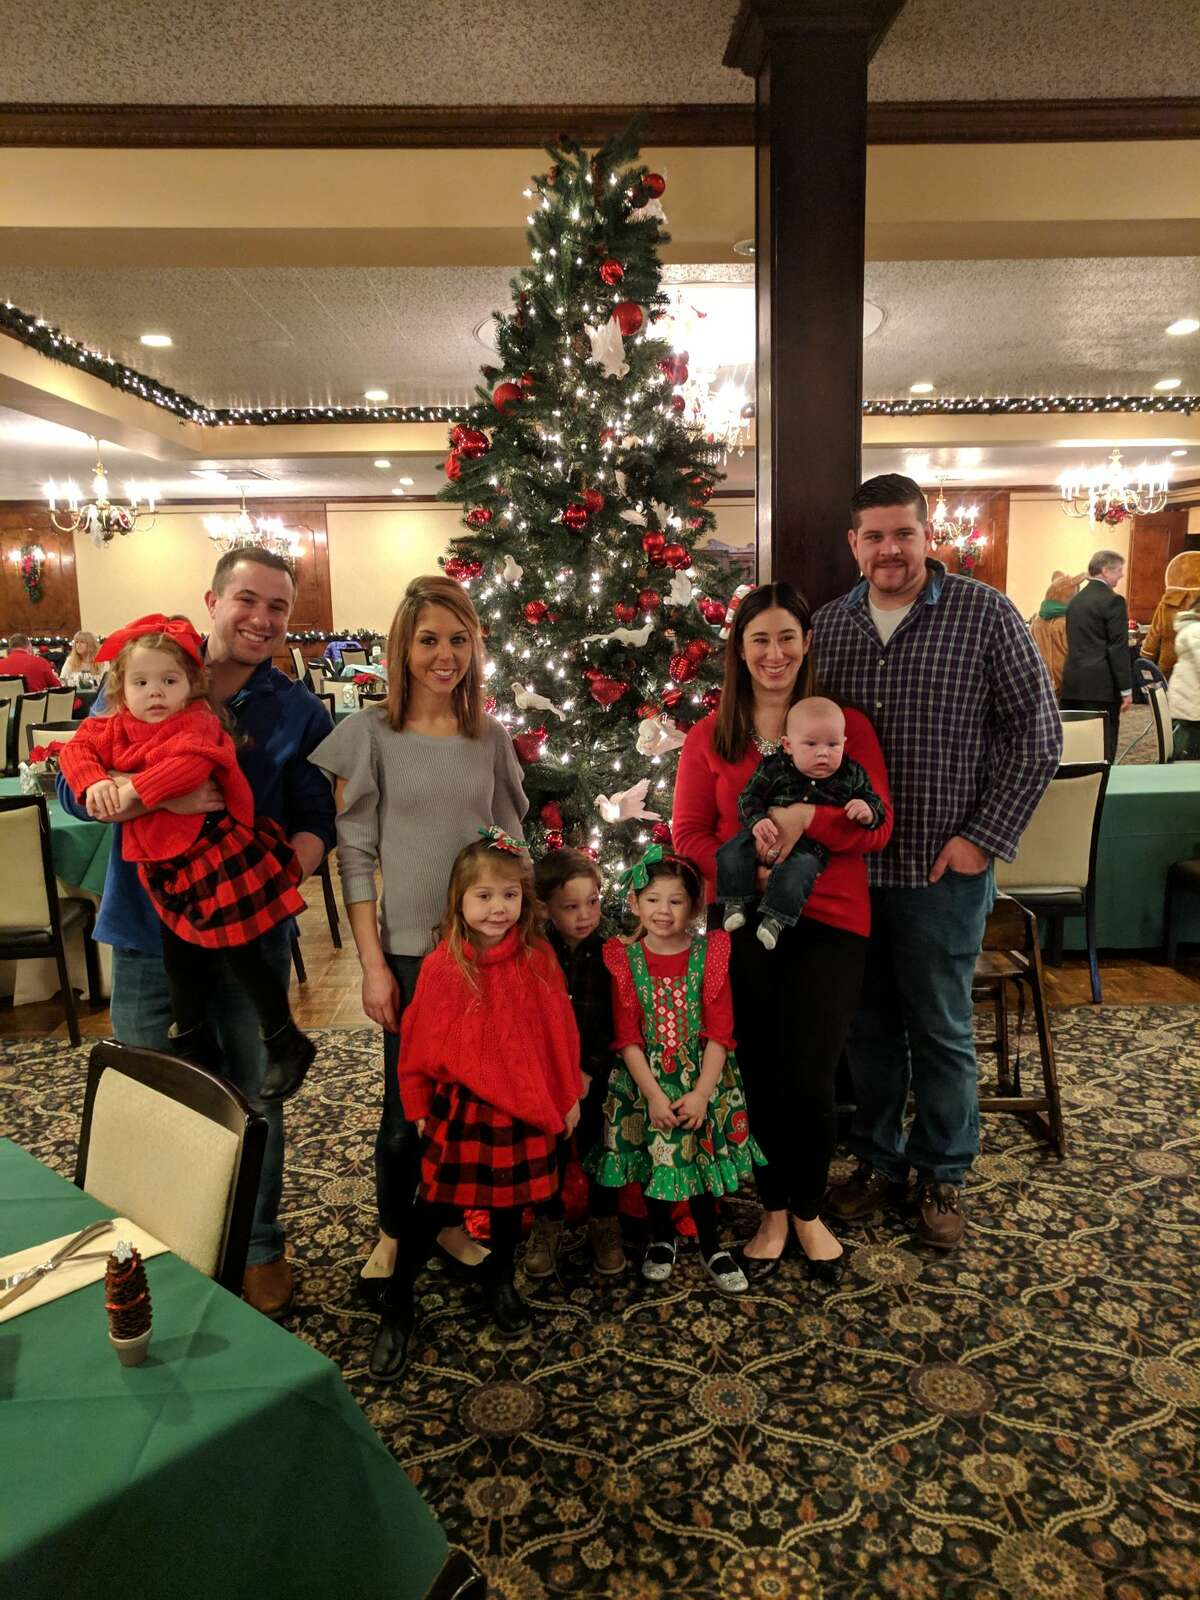 Breakfast or Lunch with Santa at The Century House in Latham, NY on Sunday, December 9, 2018.